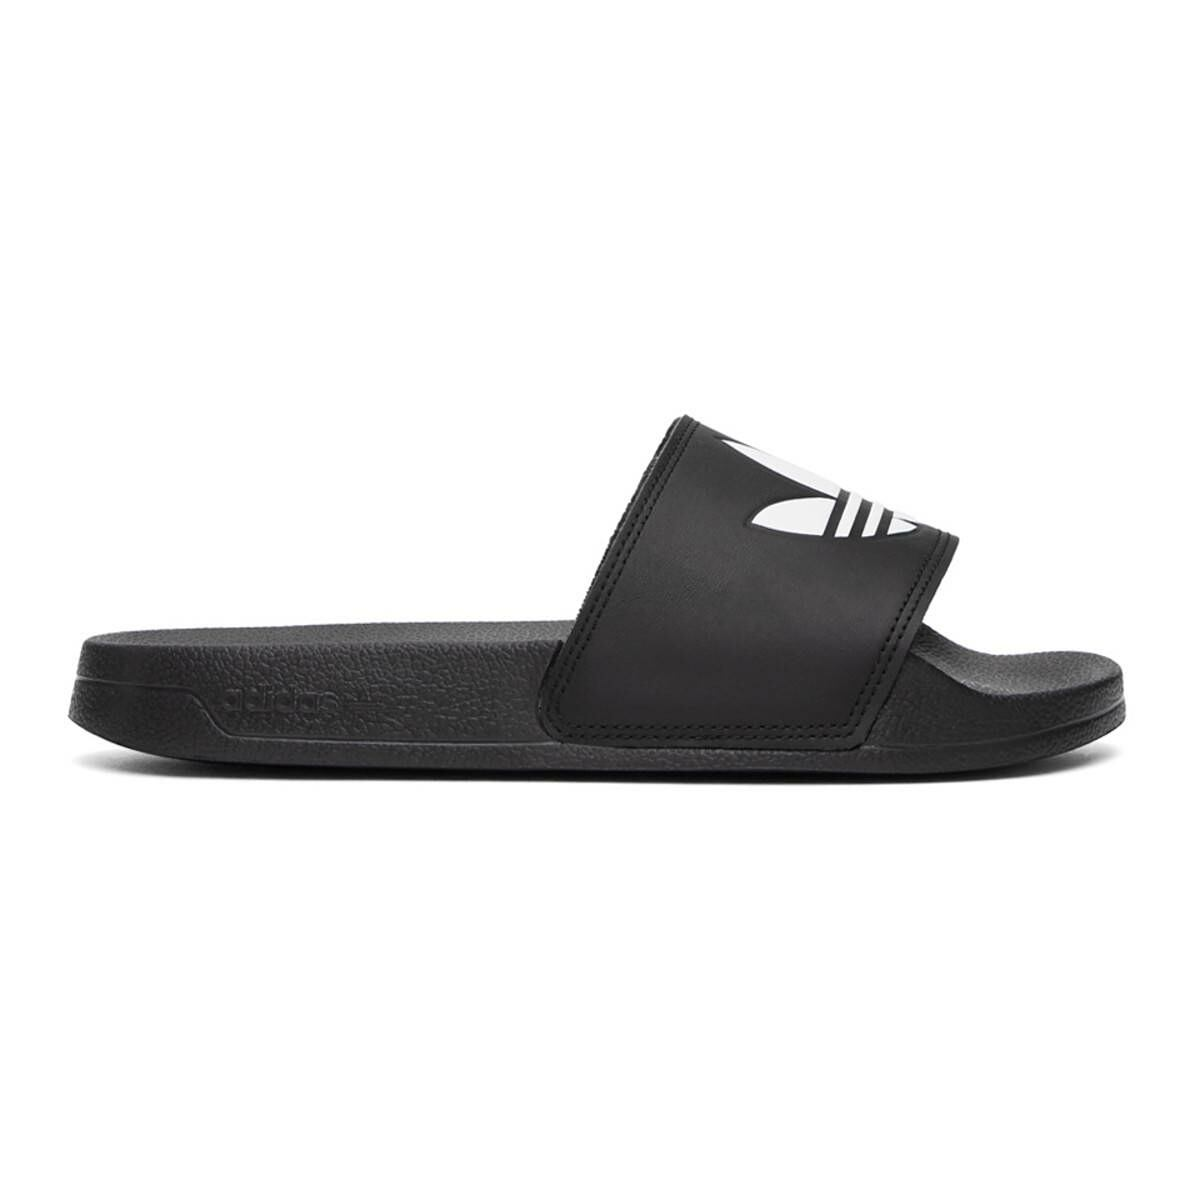 adidas Originals Black Adilette Lite Pool Slides Ssense USA MEN Men SHOES Mens SANDALS